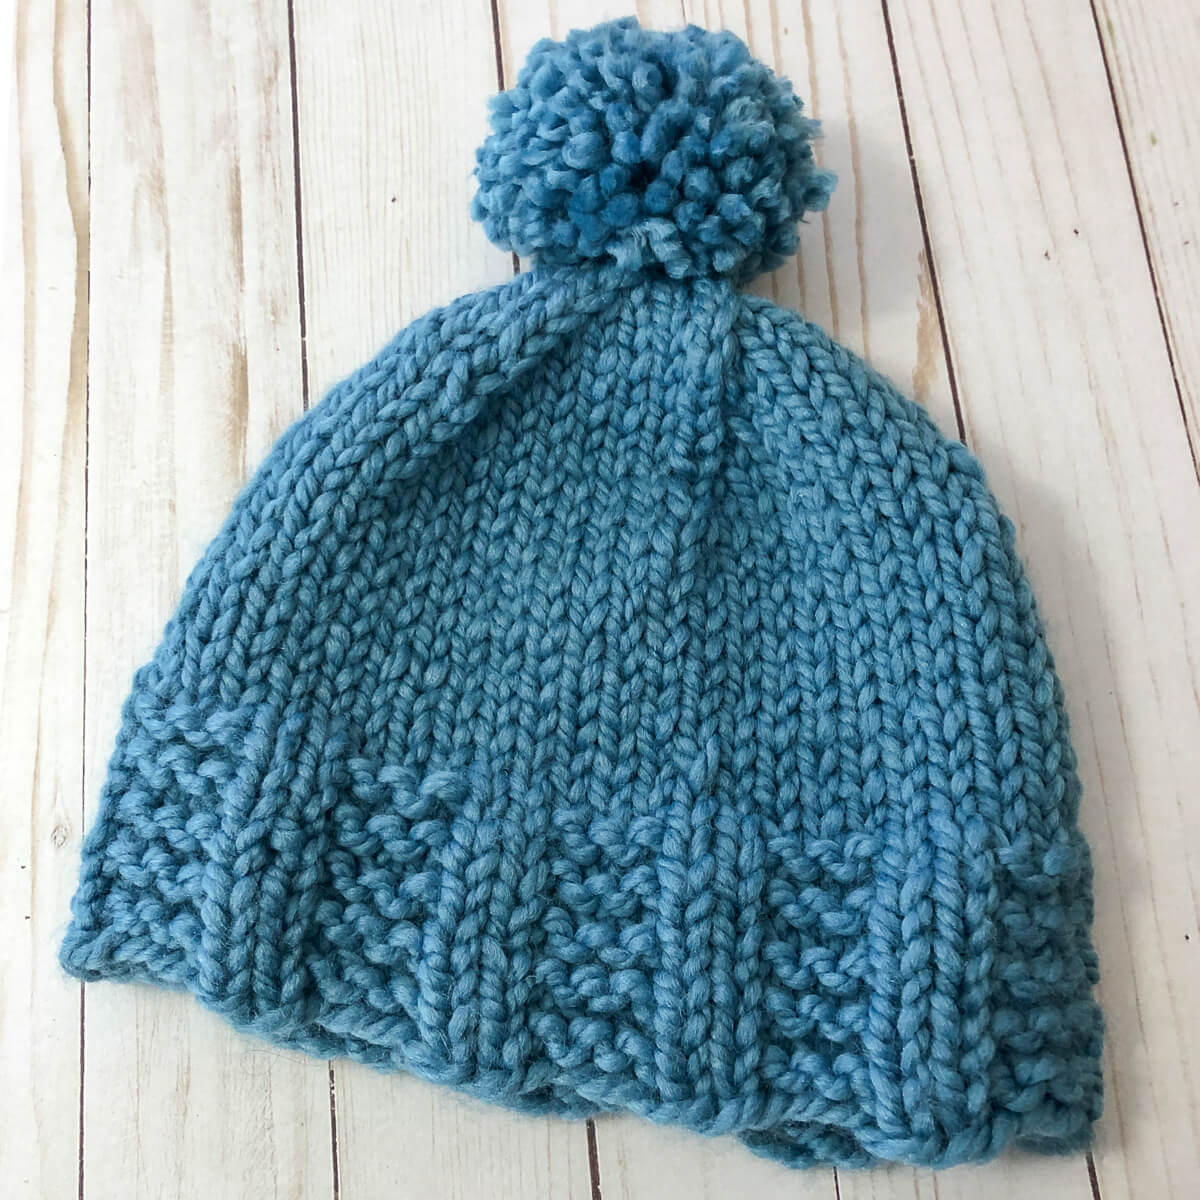 blue knitted hat with pompom, flat lay